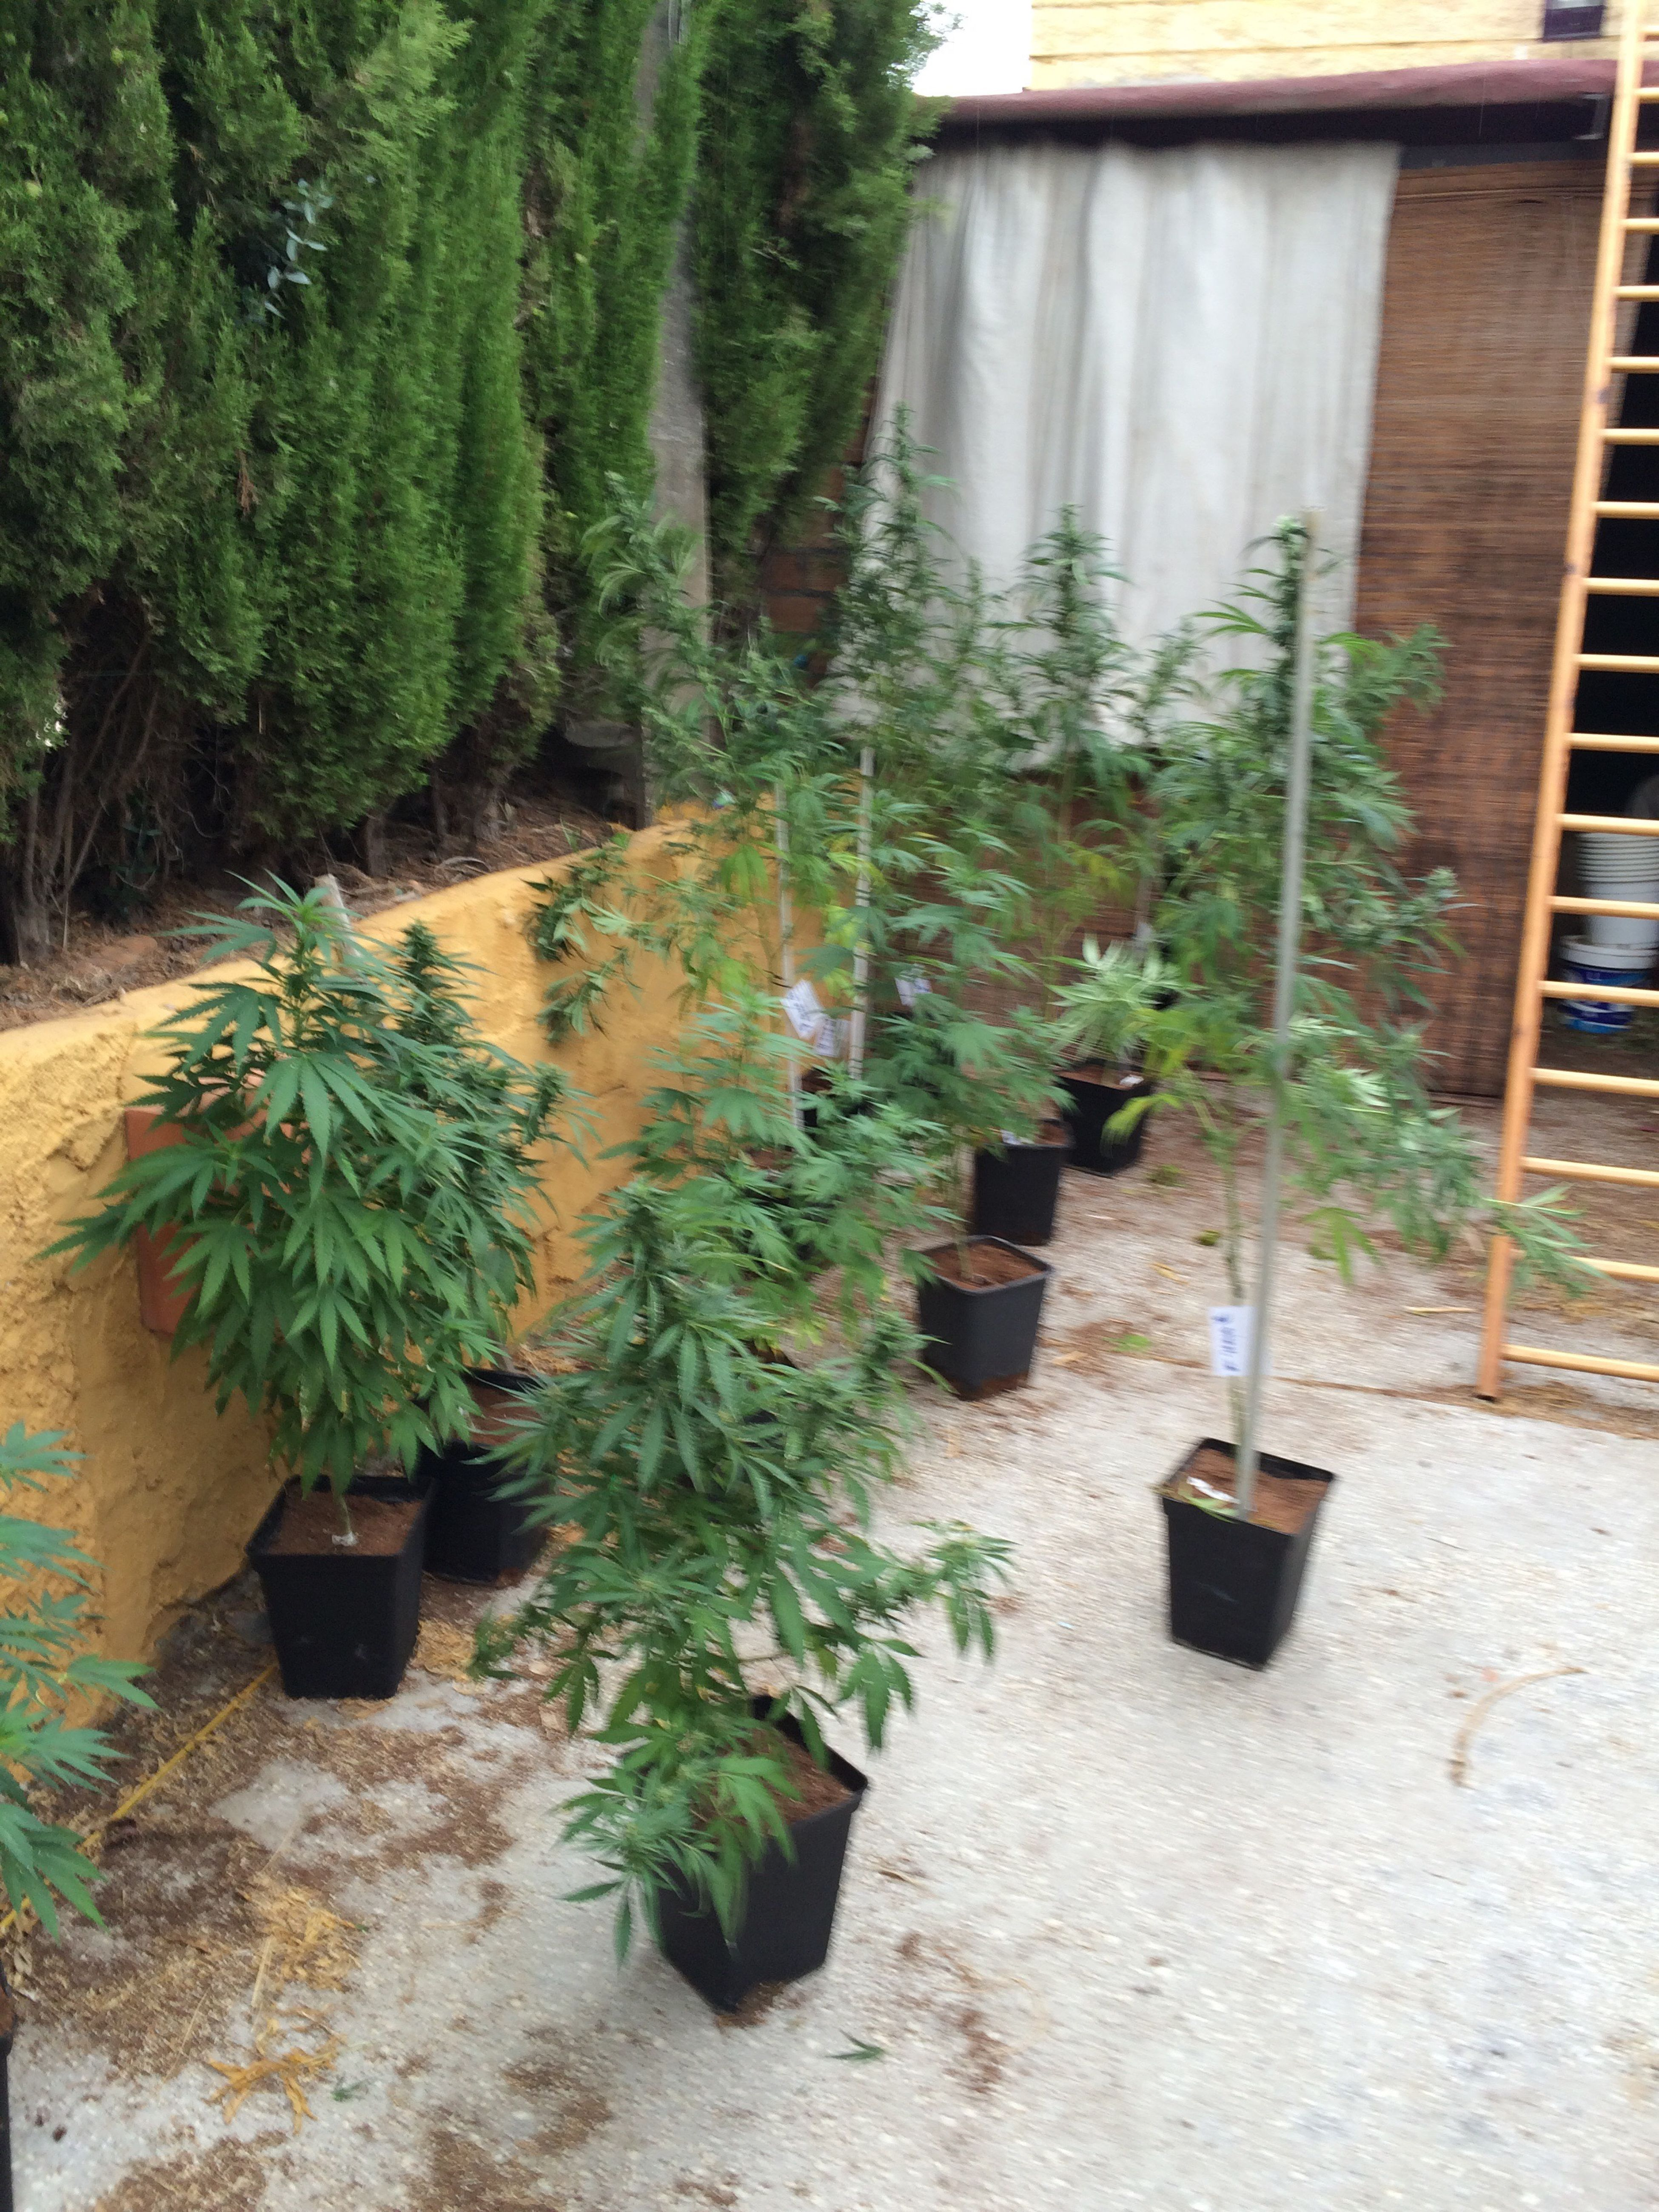 Check This Out That's Me Hanging Out The Things I Love Legalgrow Cbd Shark Cannabiscommunity Highcbd Medicine